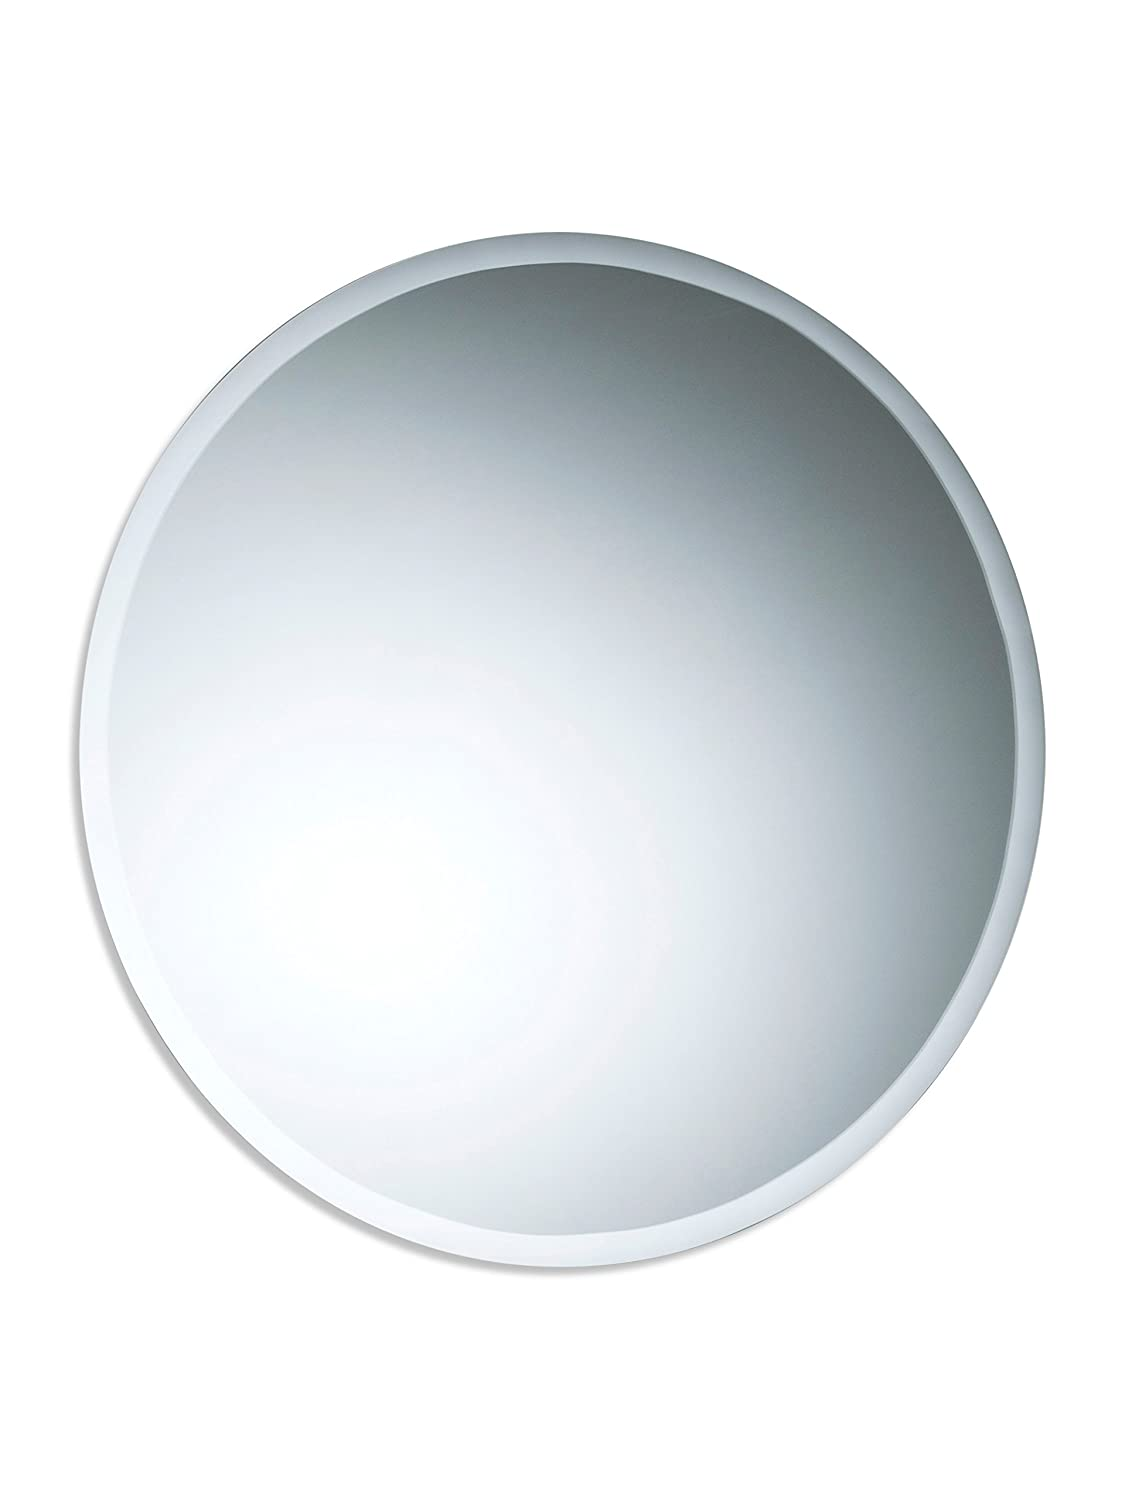 BATHROOM WALL MIRROR Simple Design ROUND WITH BEVEL Frameless Plain Mirror 40cm x 40cm Neue Design